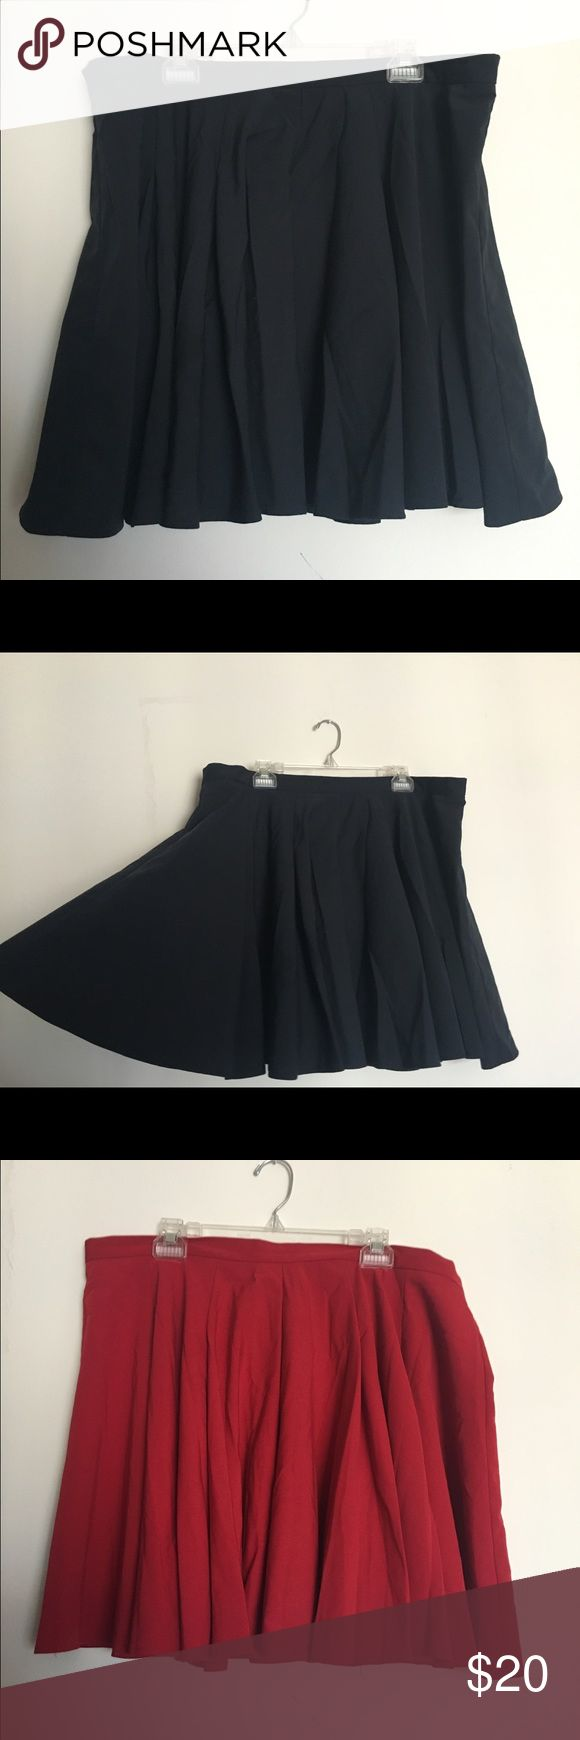 Size 16 ASOS circle skirts (2) Two skirts in this listing. Circle skirts with a lot of fabric. Zip and closure in back. My storage that held these clothes were at a house with smokers and dogs - smell may be faint but with a wash it would be clear. ASOS Curve Skirts Circle & Skater